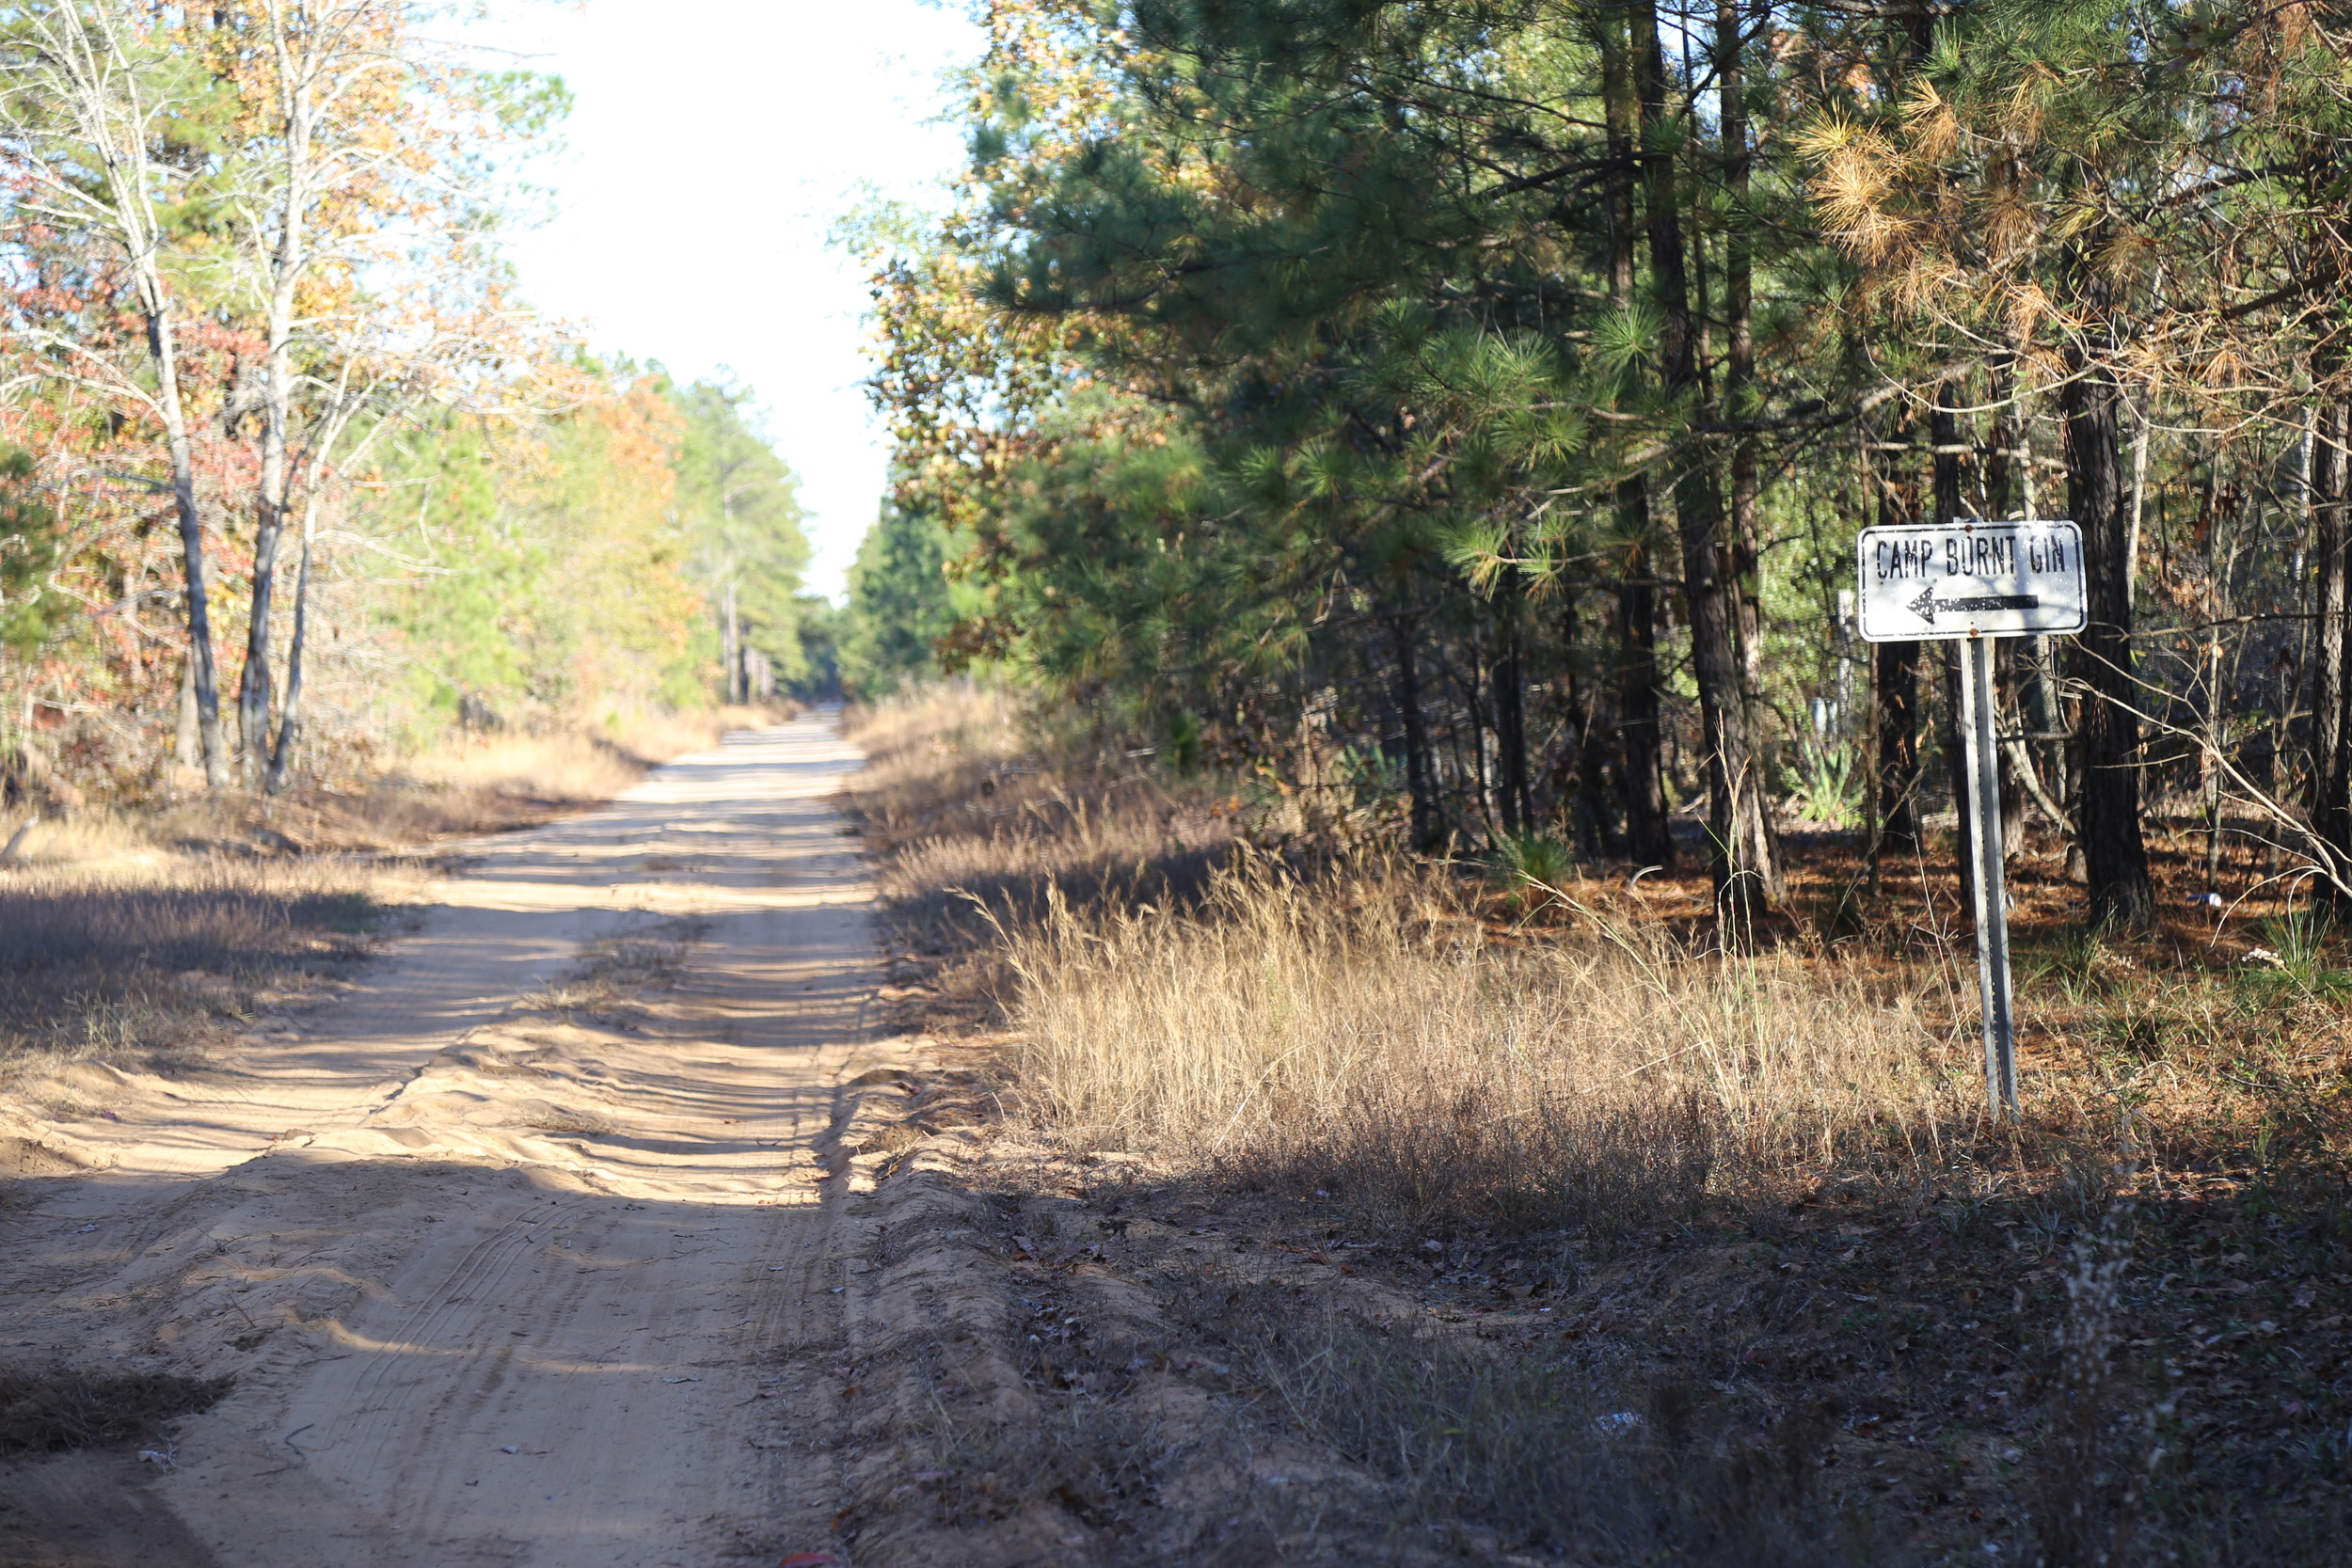 The body of Suzette Ginther was found off this road about 150 feet into the Manchester State Forest Thursday.